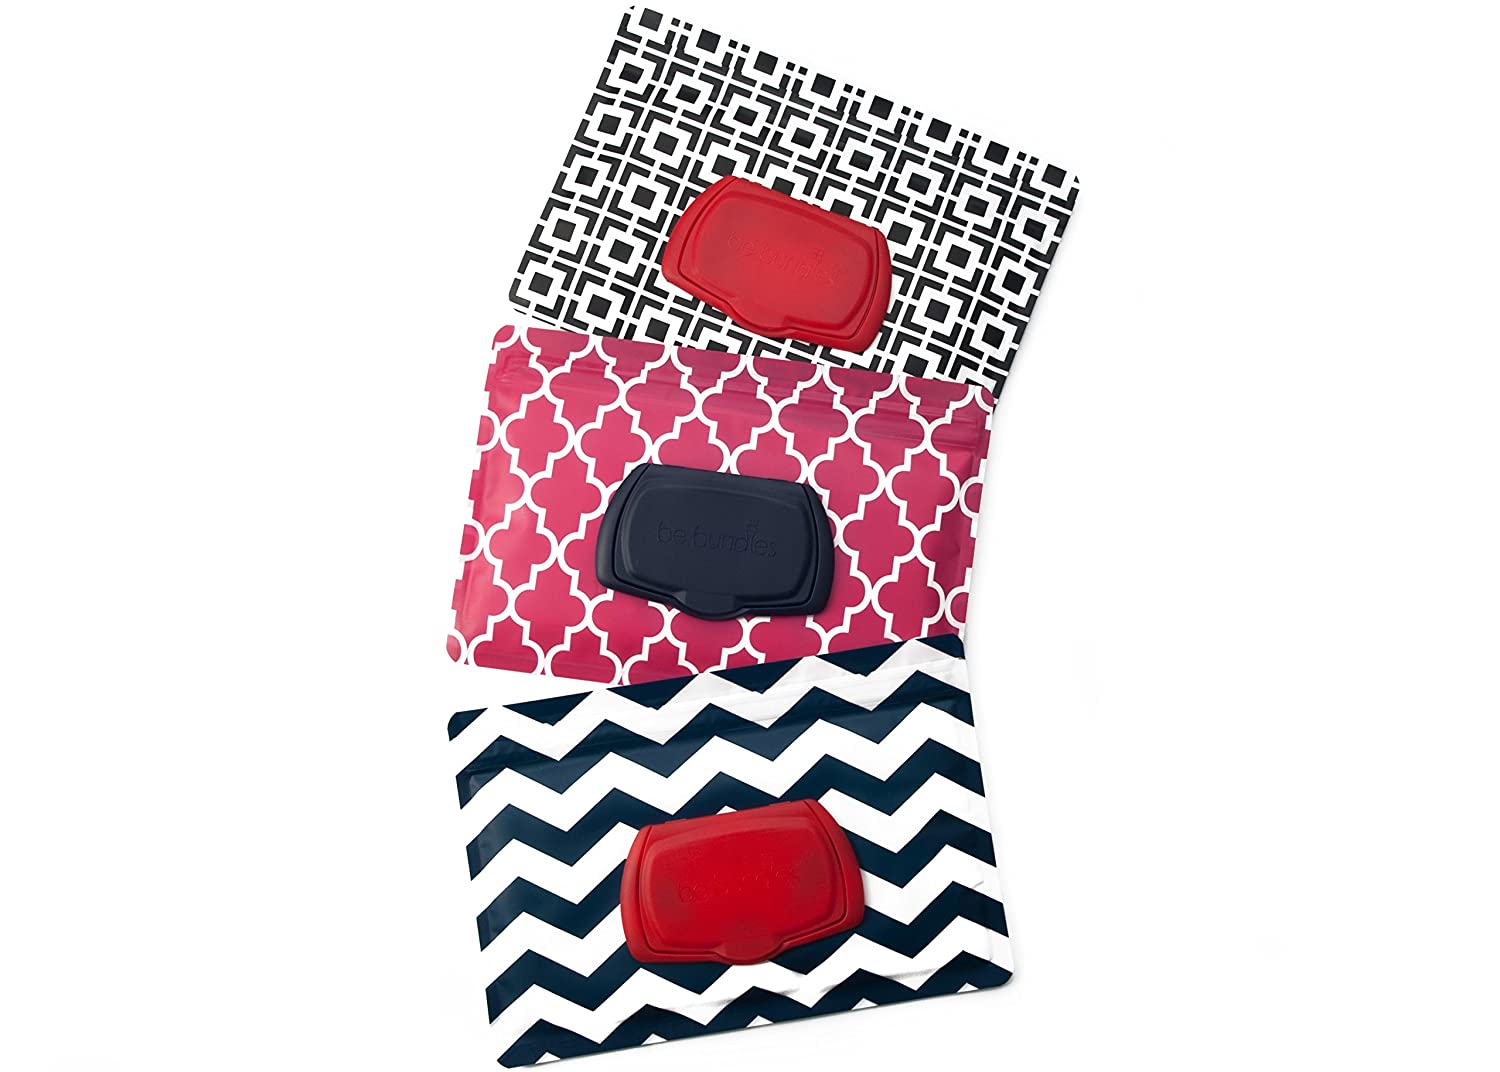 Be Bundles Wet Wipes Pouch VERSION 2 - NEW replacement snap-on lid included, 3-Pack, Green Herringbone/Navy Chevron/Black Geometric - VINYL FREE (EVA and PVC)!!